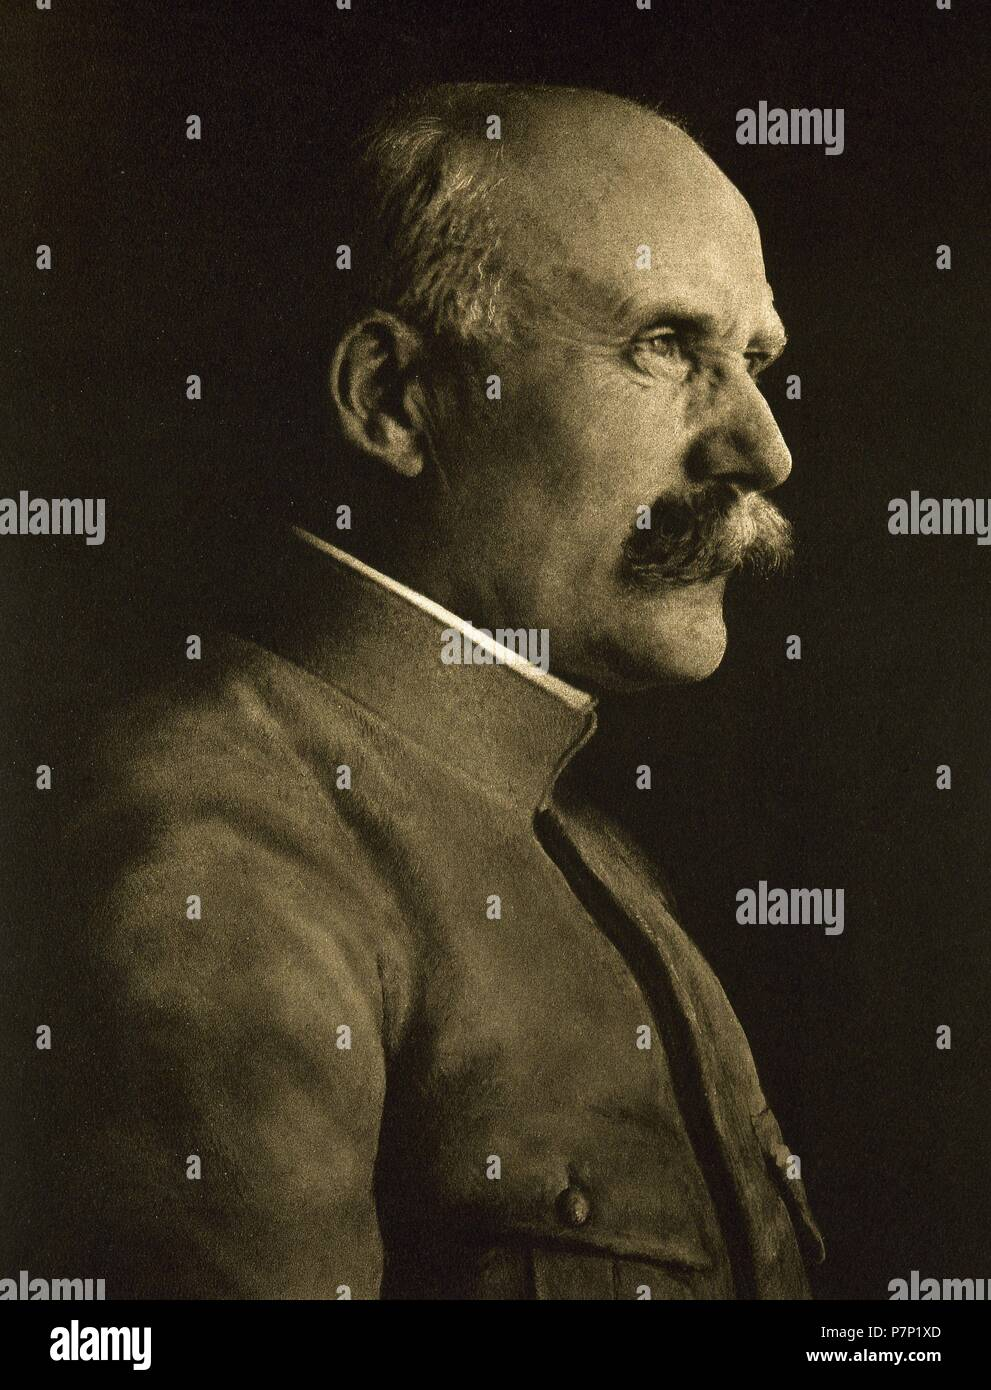 Philippe Petain (1856-1951). French general who reached the distinction of Marshal of France. Chief of State of Vichy France from 1940 to 1944. Portrait. 'La Ilustracion Francesa', 1917. - Stock Image